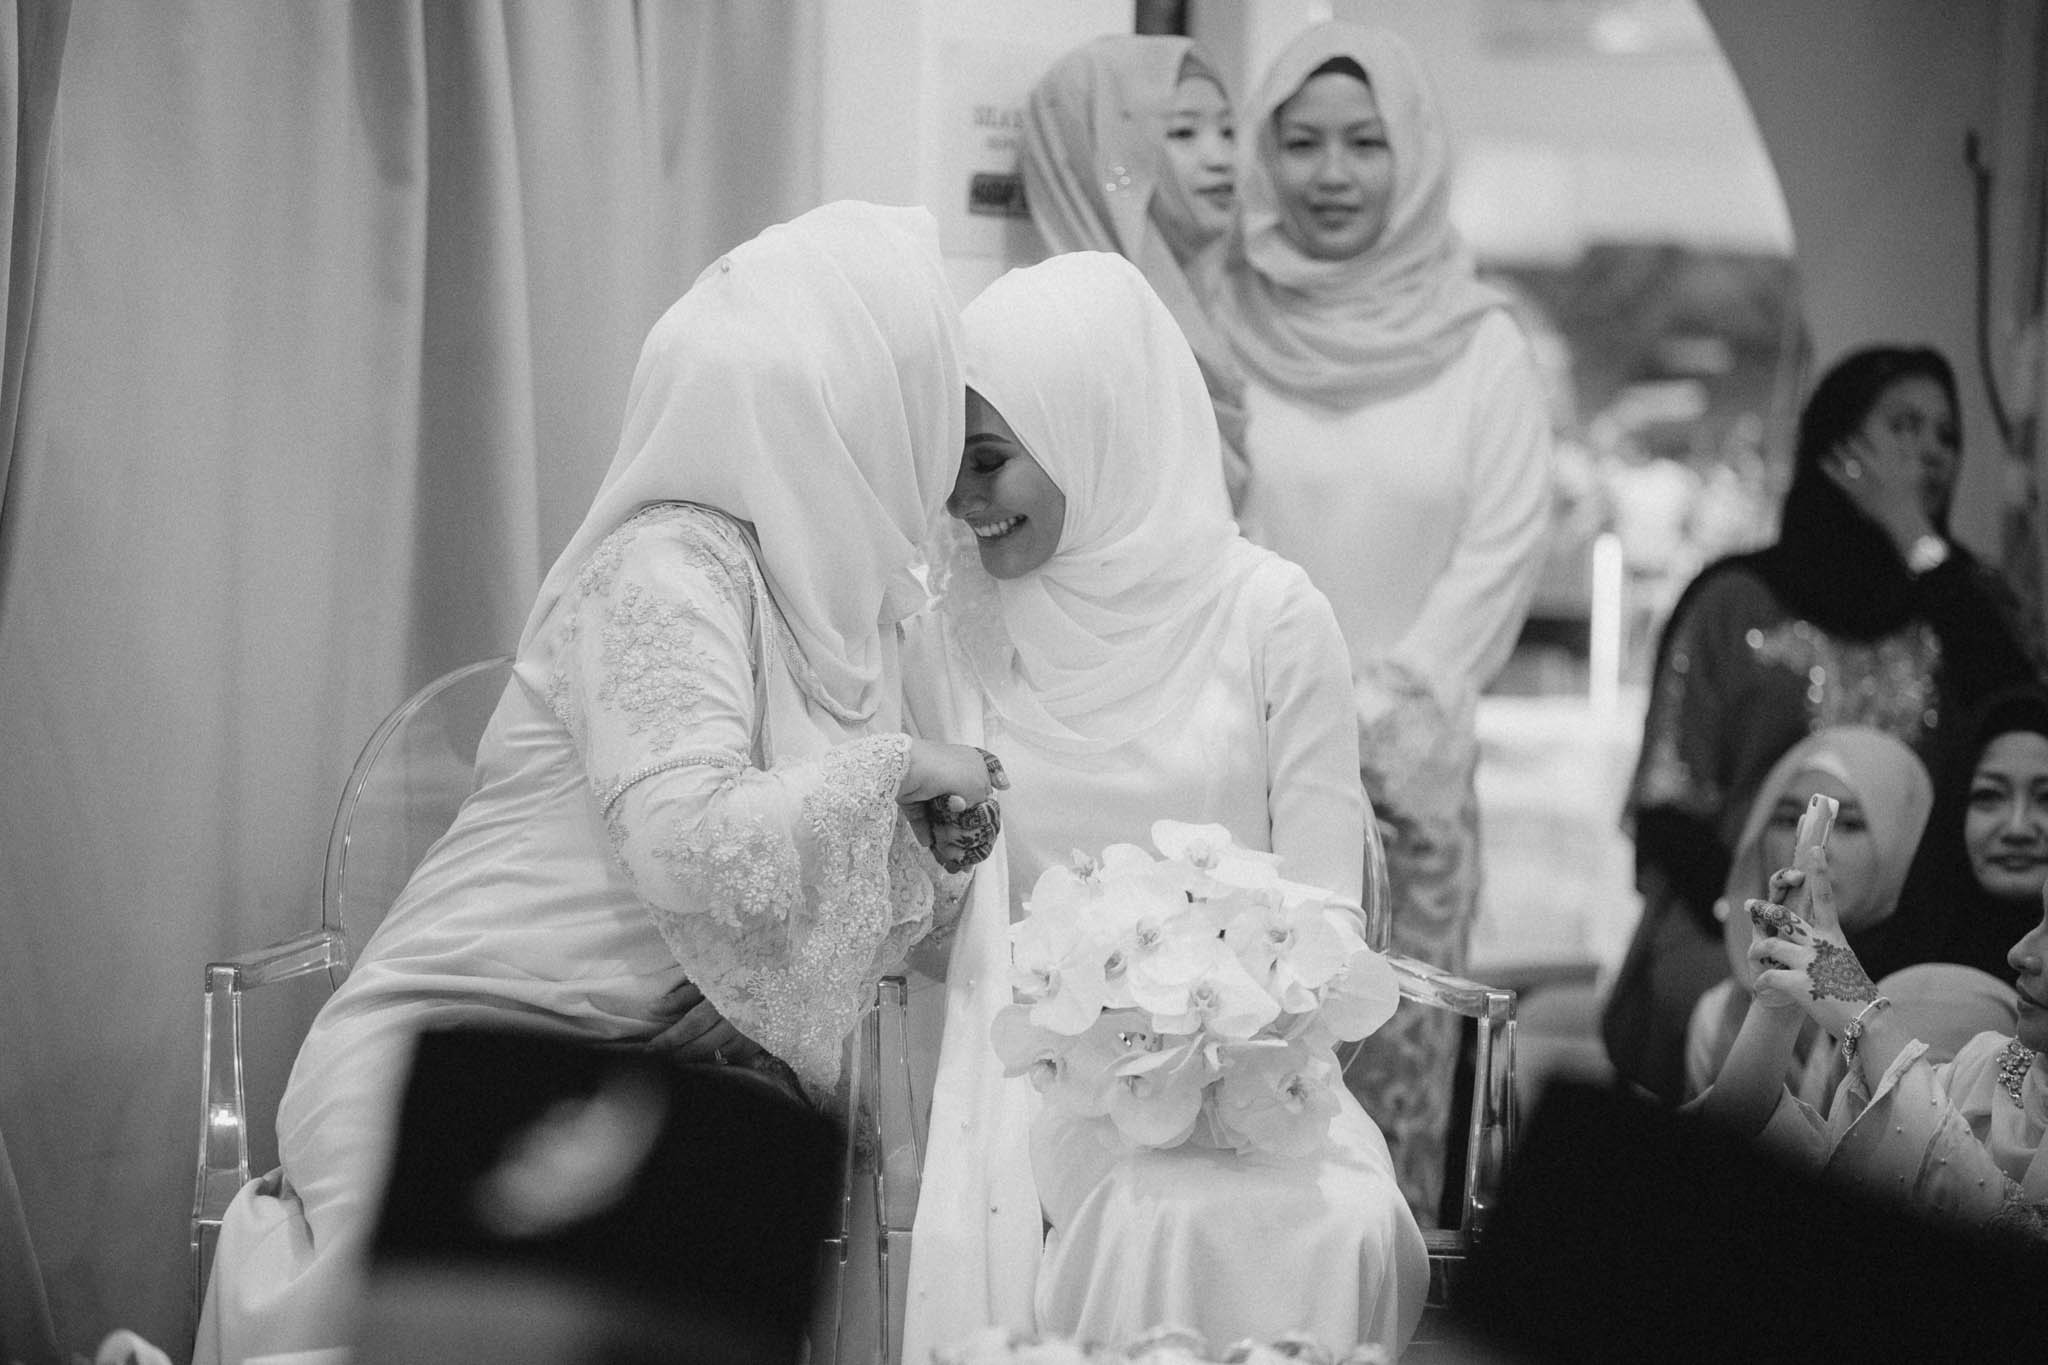 singapore-wedding-photographer-we-made-these-2016-selects-067.jpg